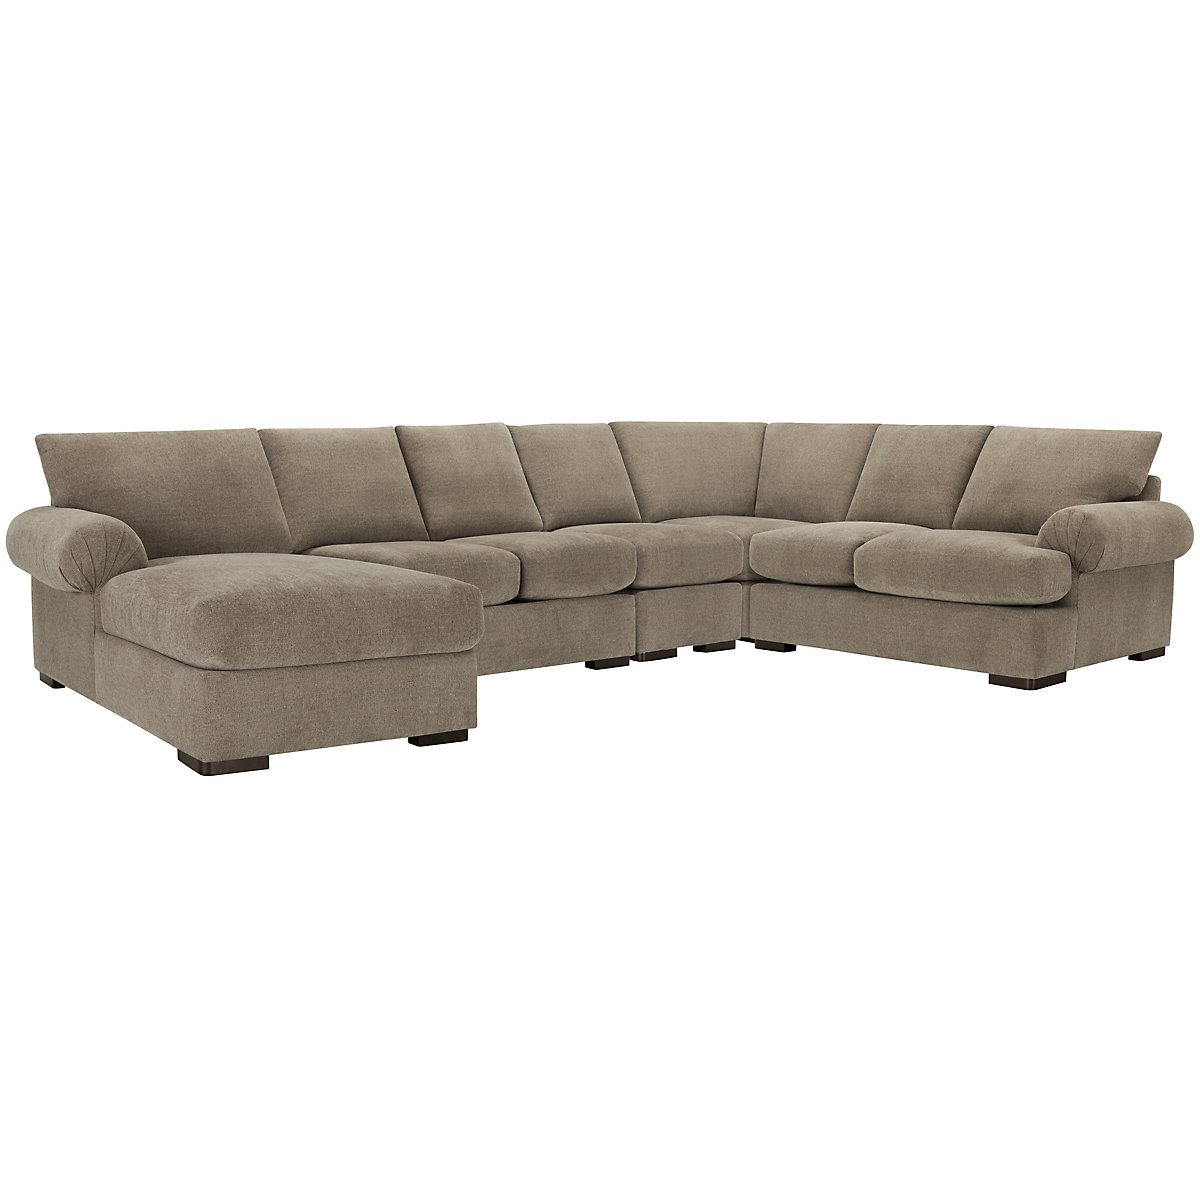 Belair Dark Taupe Fabric Large Left Chaise Sectional